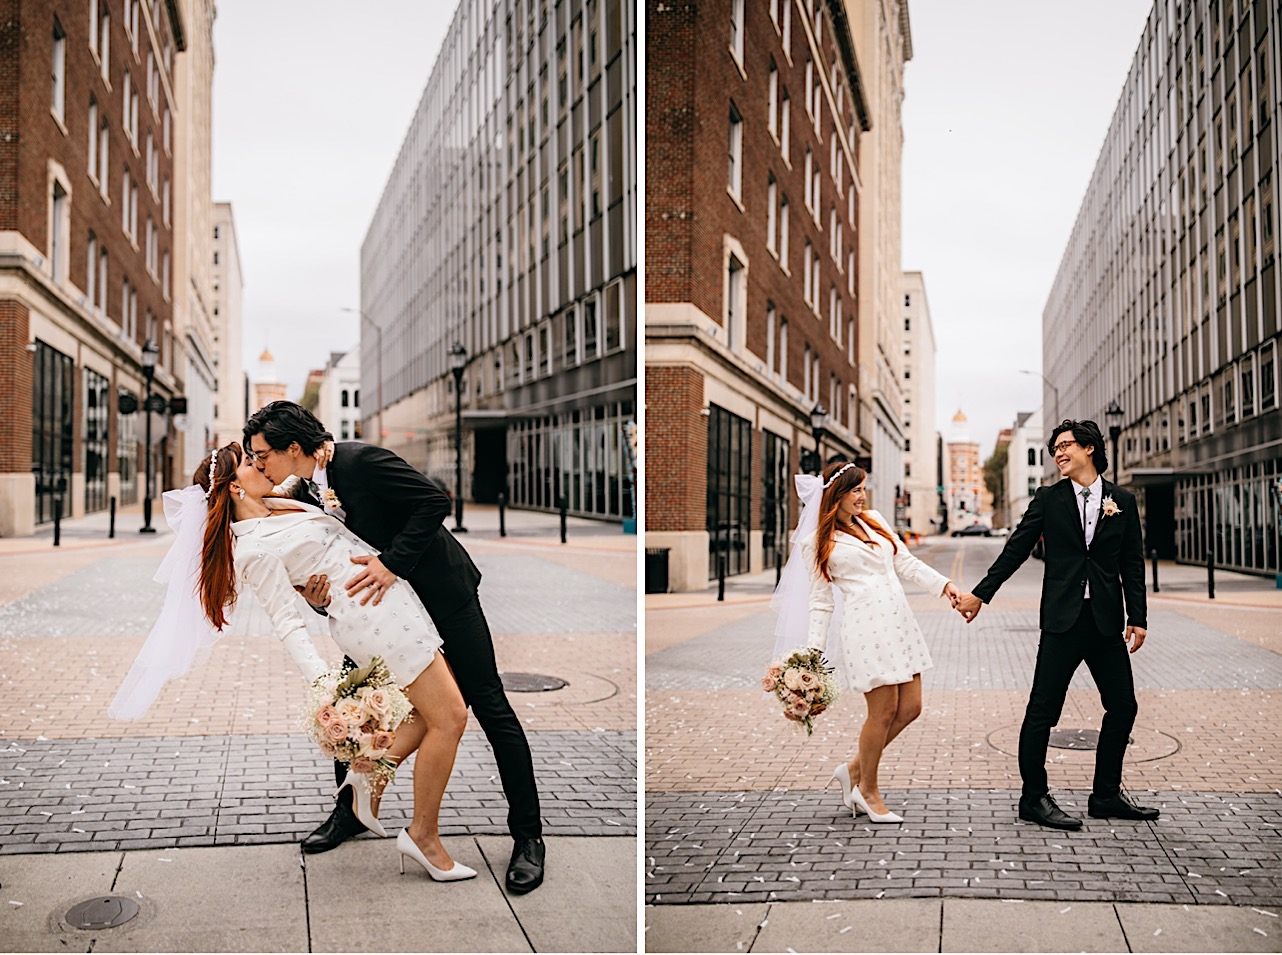 A bride and groom kiss in a downtown city street.